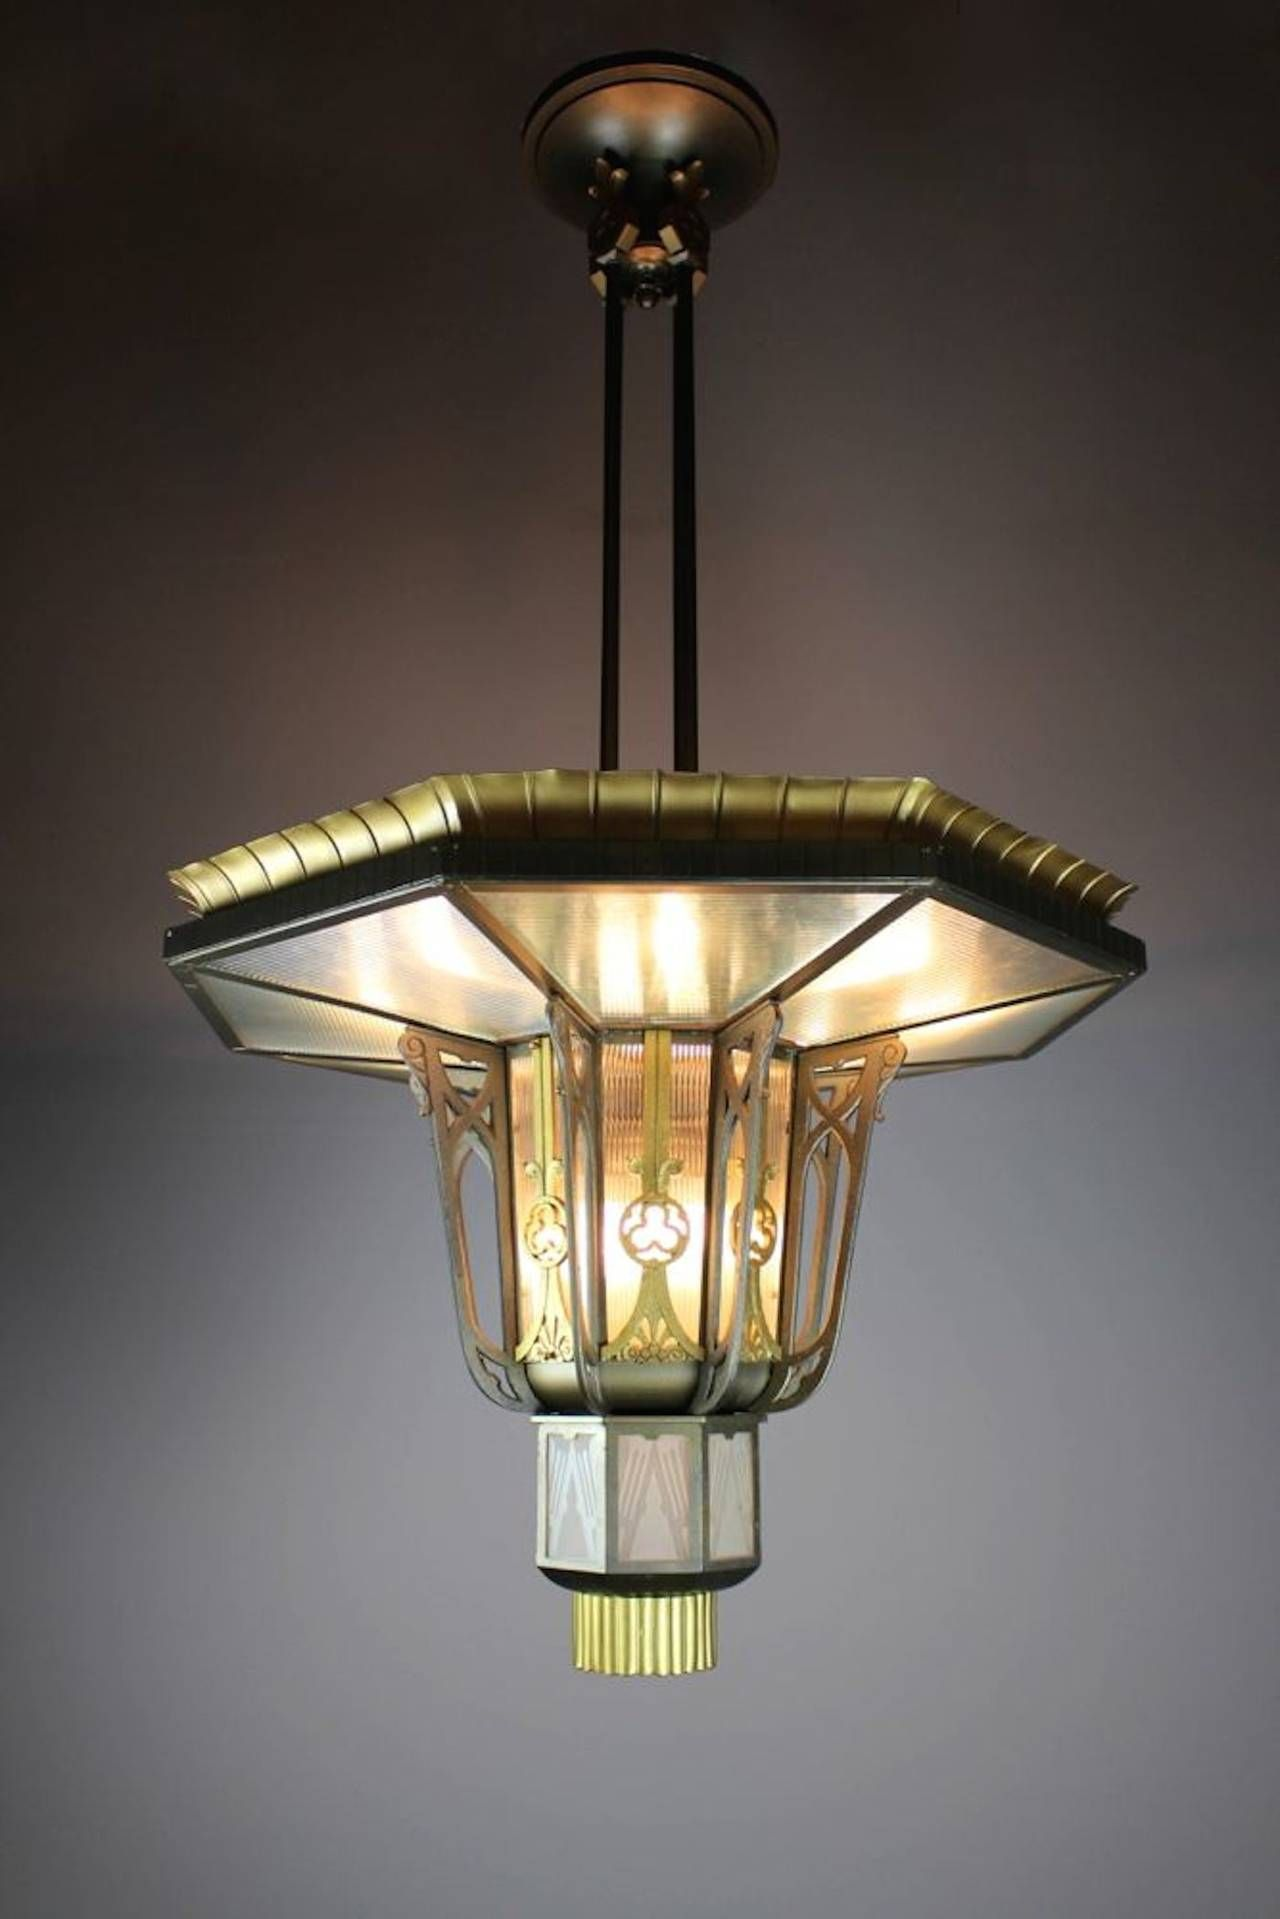 Monumental Art Deco Theatre Light   From a unique collection of antique and modern chandeliers and pendants  at https://www.1stdibs.com/furniture/lighting/chandeliers-pendant-lights/